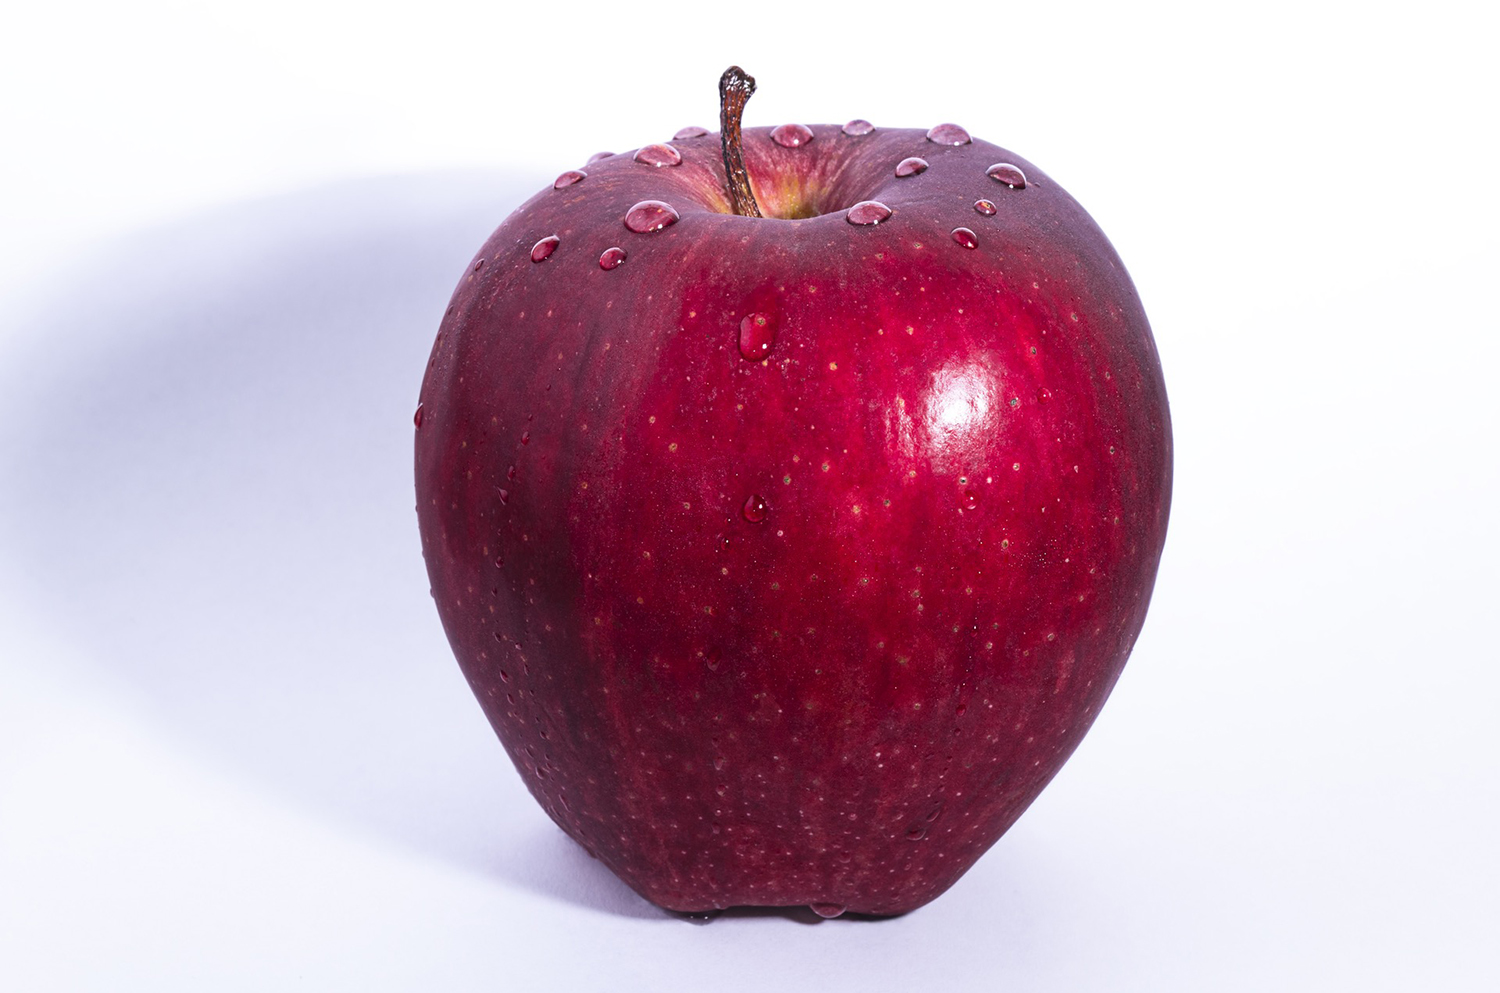 One Red Apple With Water Droplets